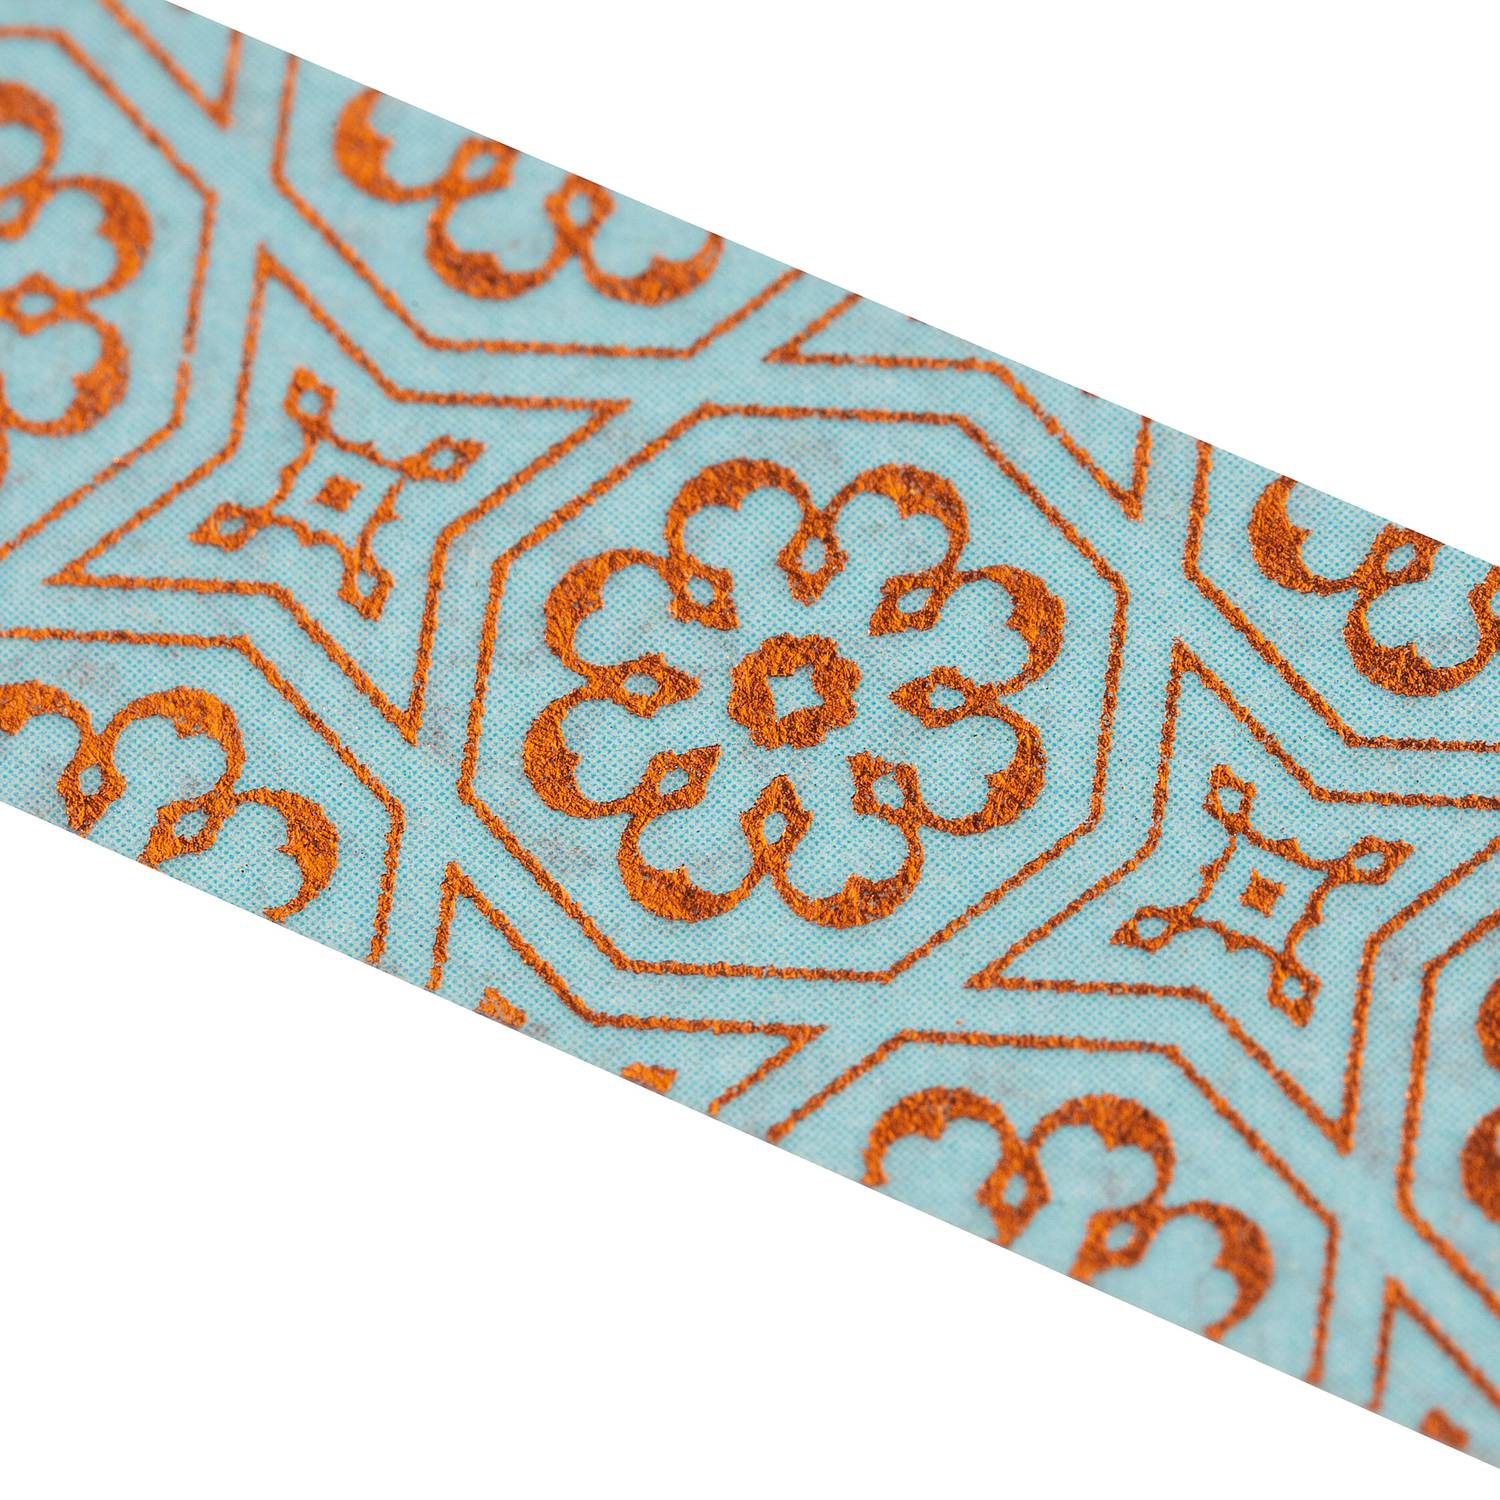 Washi Tape - Marrakech kupfer, blau